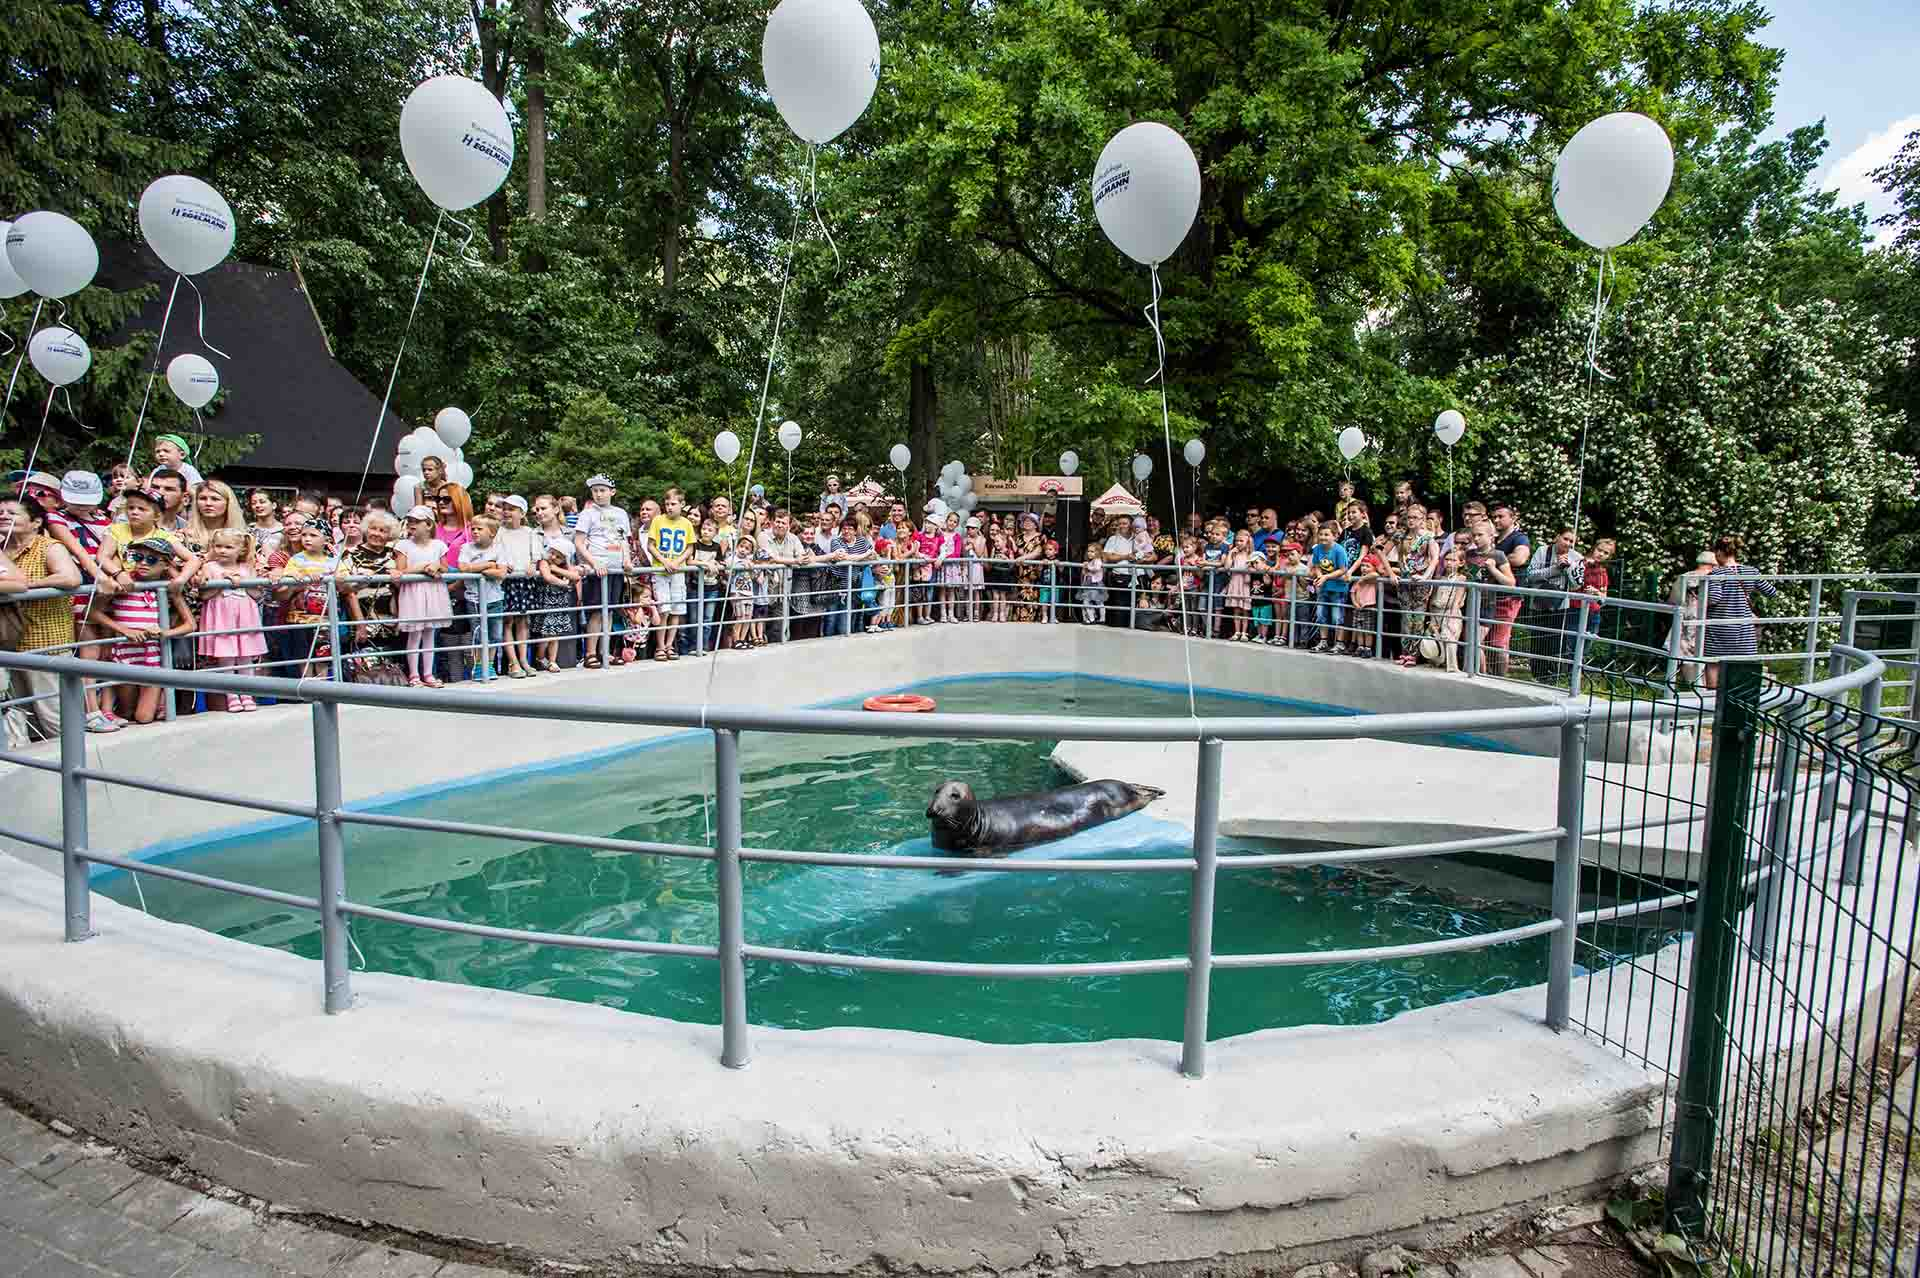 Baltic Grey Seal On Display At A Zoo In Lithuania